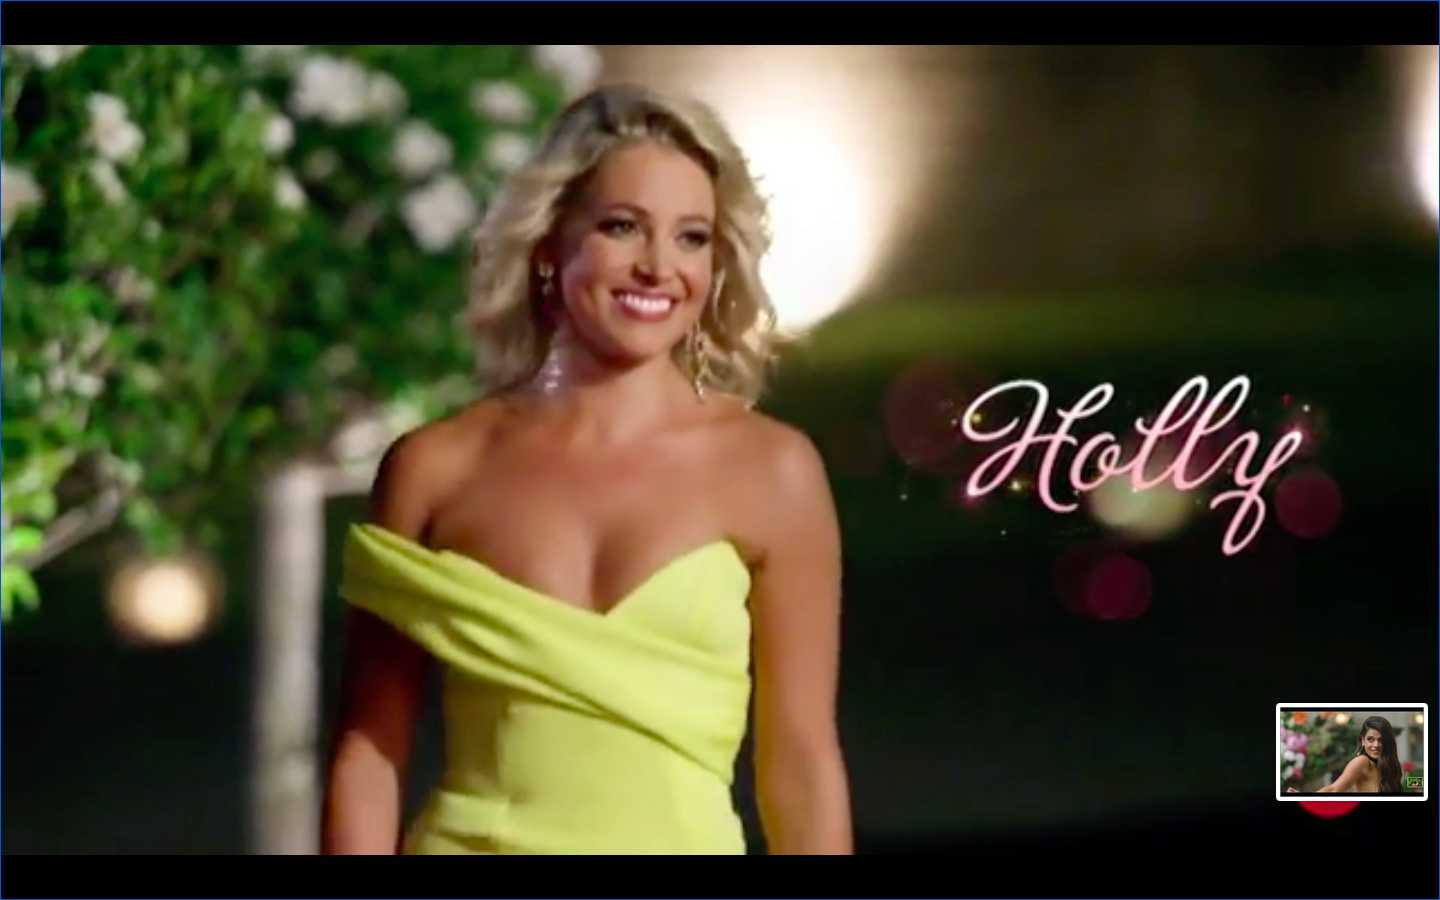 Bachelor Australia - Season 9 - Jimmy Nicholson - Holly Kingston - Paddle Boat Blonde 1-on-1 date - *Sleuthing Spoilers* - Page 2 Scree117